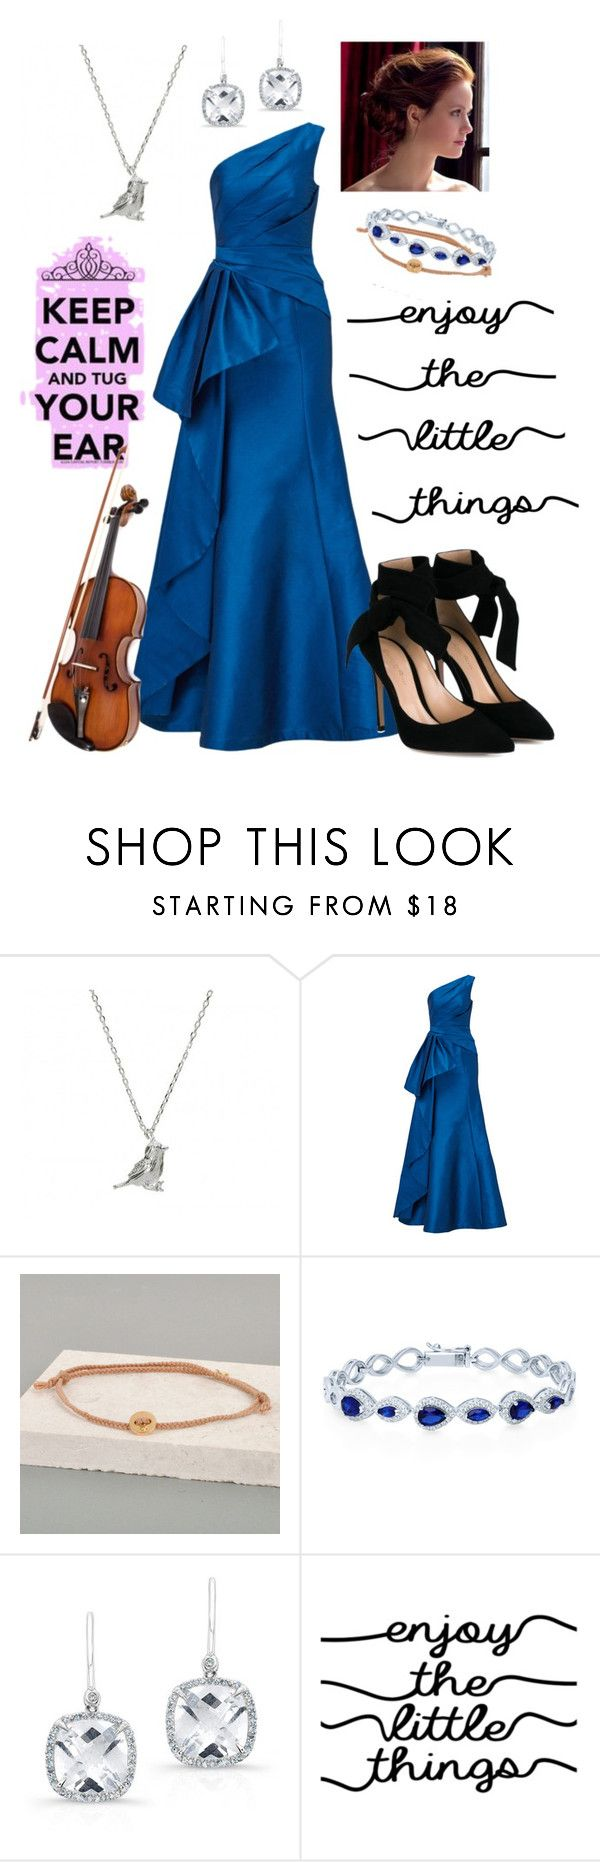 """""""Lady America"""" by tori1121 ❤ liked on Polyvore featuring Estella Bartlett, ML Monique Lhuillier, Hollister Co., Lindsay Pearson, BERRICLE, Anne Sisteron, WALL, Gianvito Rossi, theselection and AmericaSinger"""